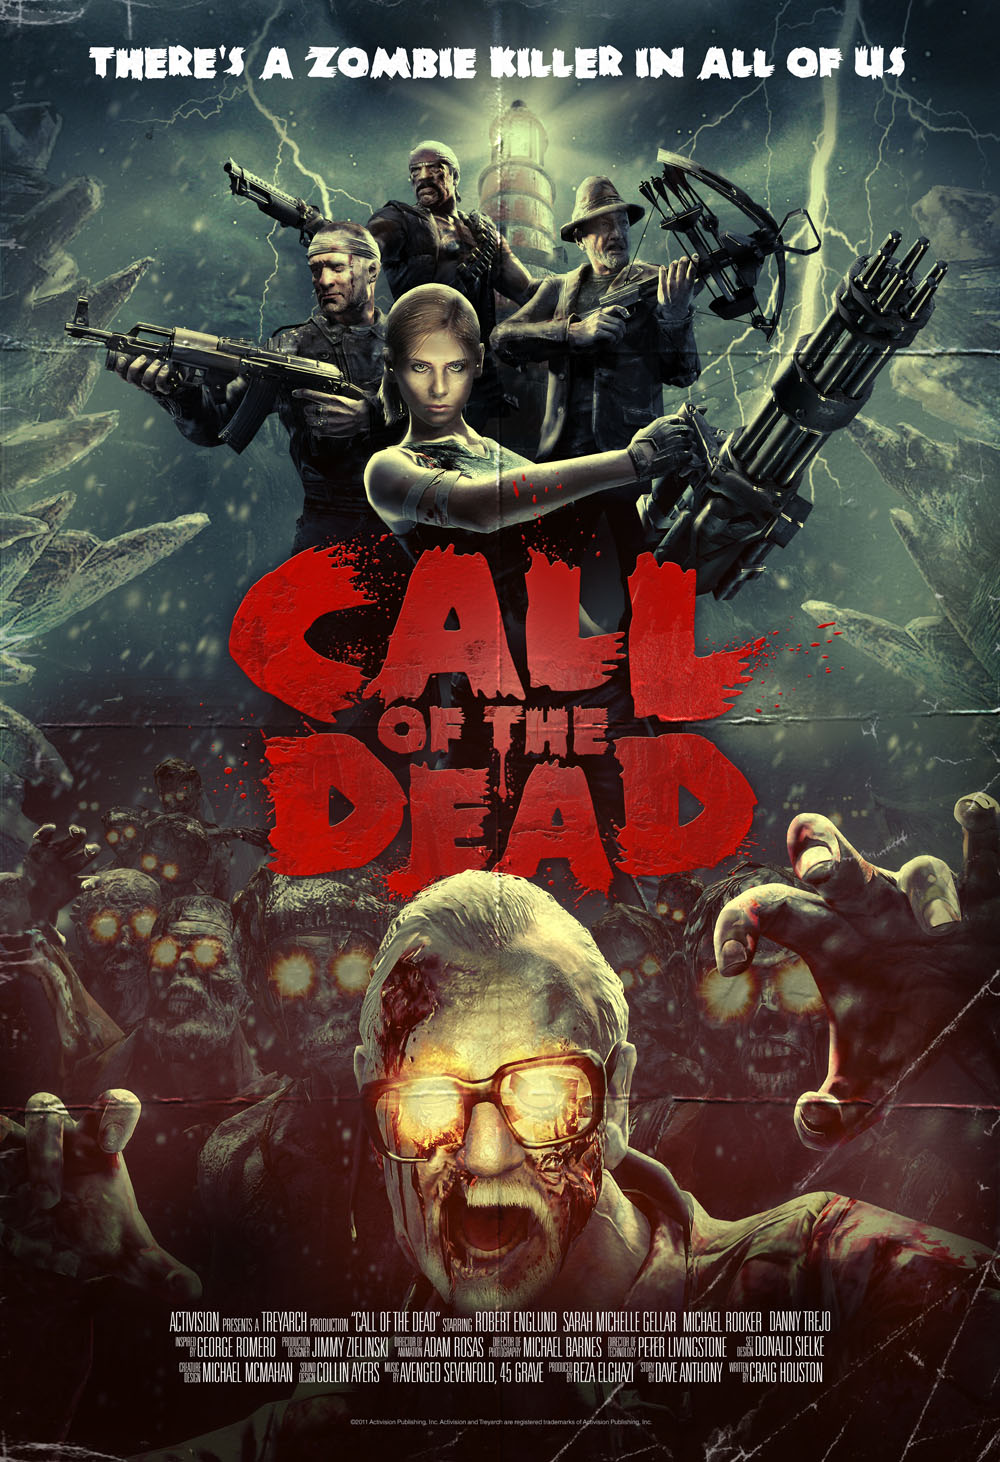 ... of Duty: Black Ops Call of the Dead One-Sheet (click for larger image: www.dreadcentral.com/news/44177/win-badass-call-duty-black-ops-call...